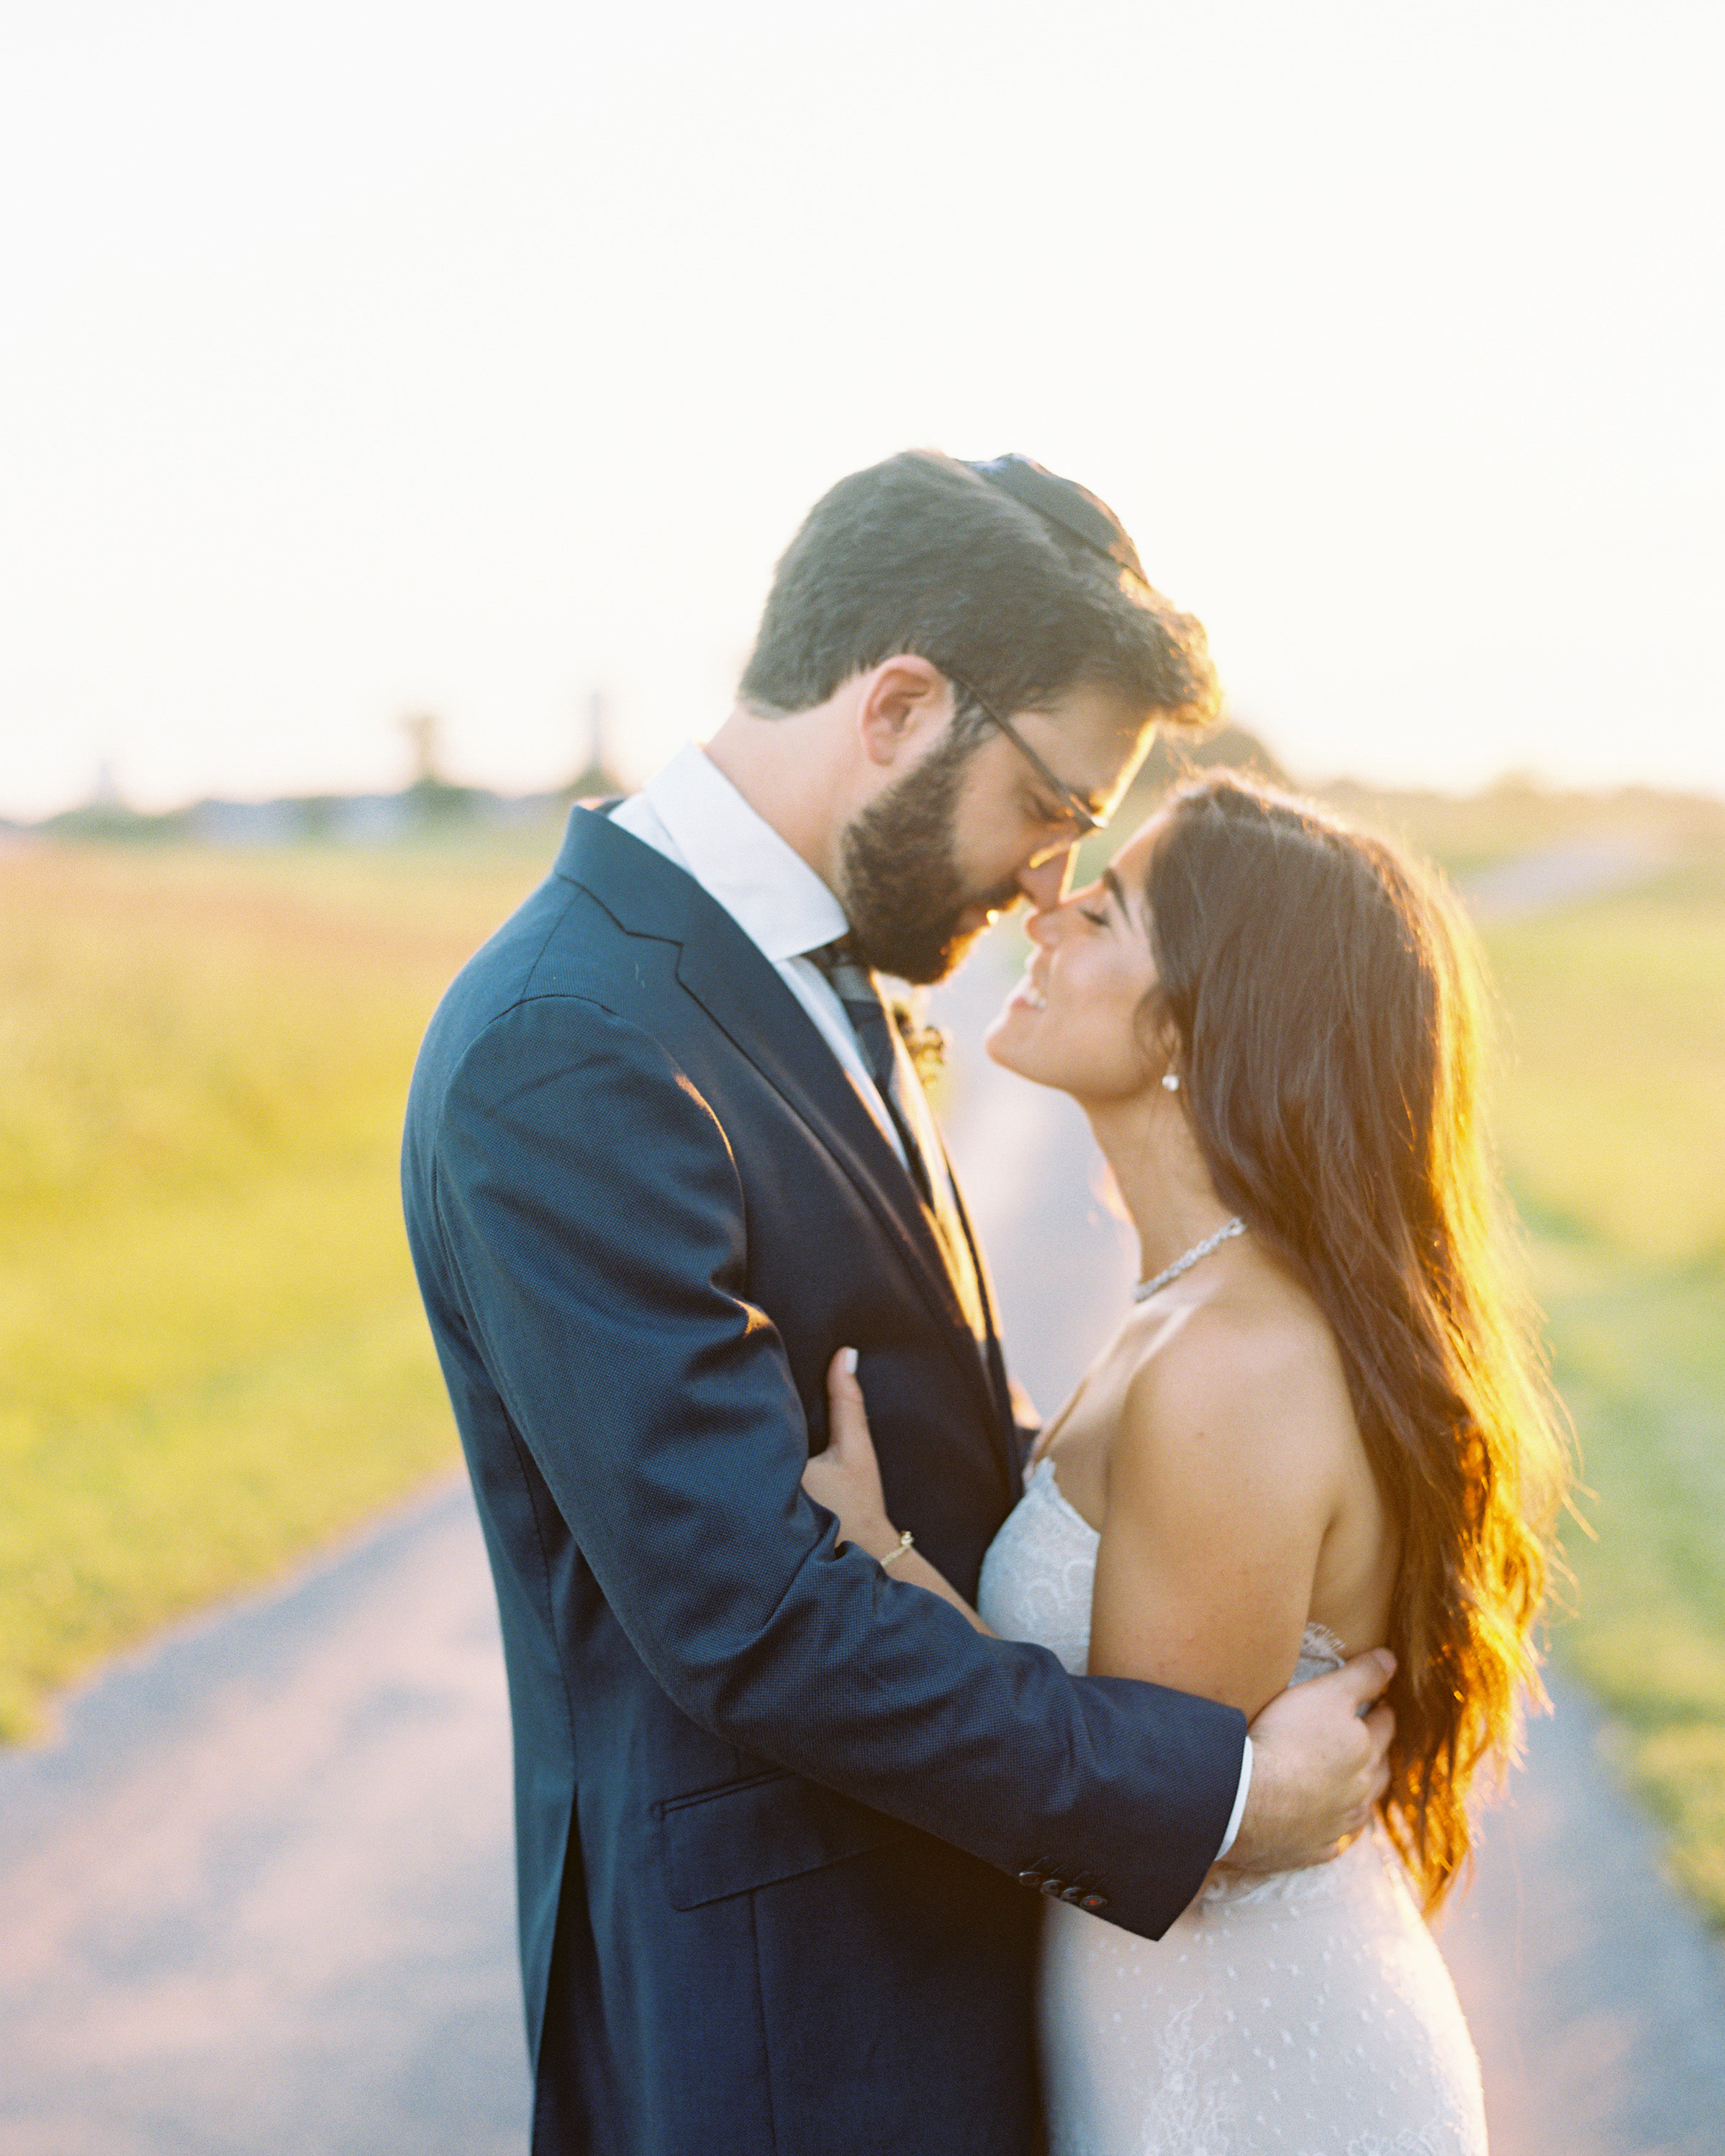 loving couple pose outdoors in sunlight